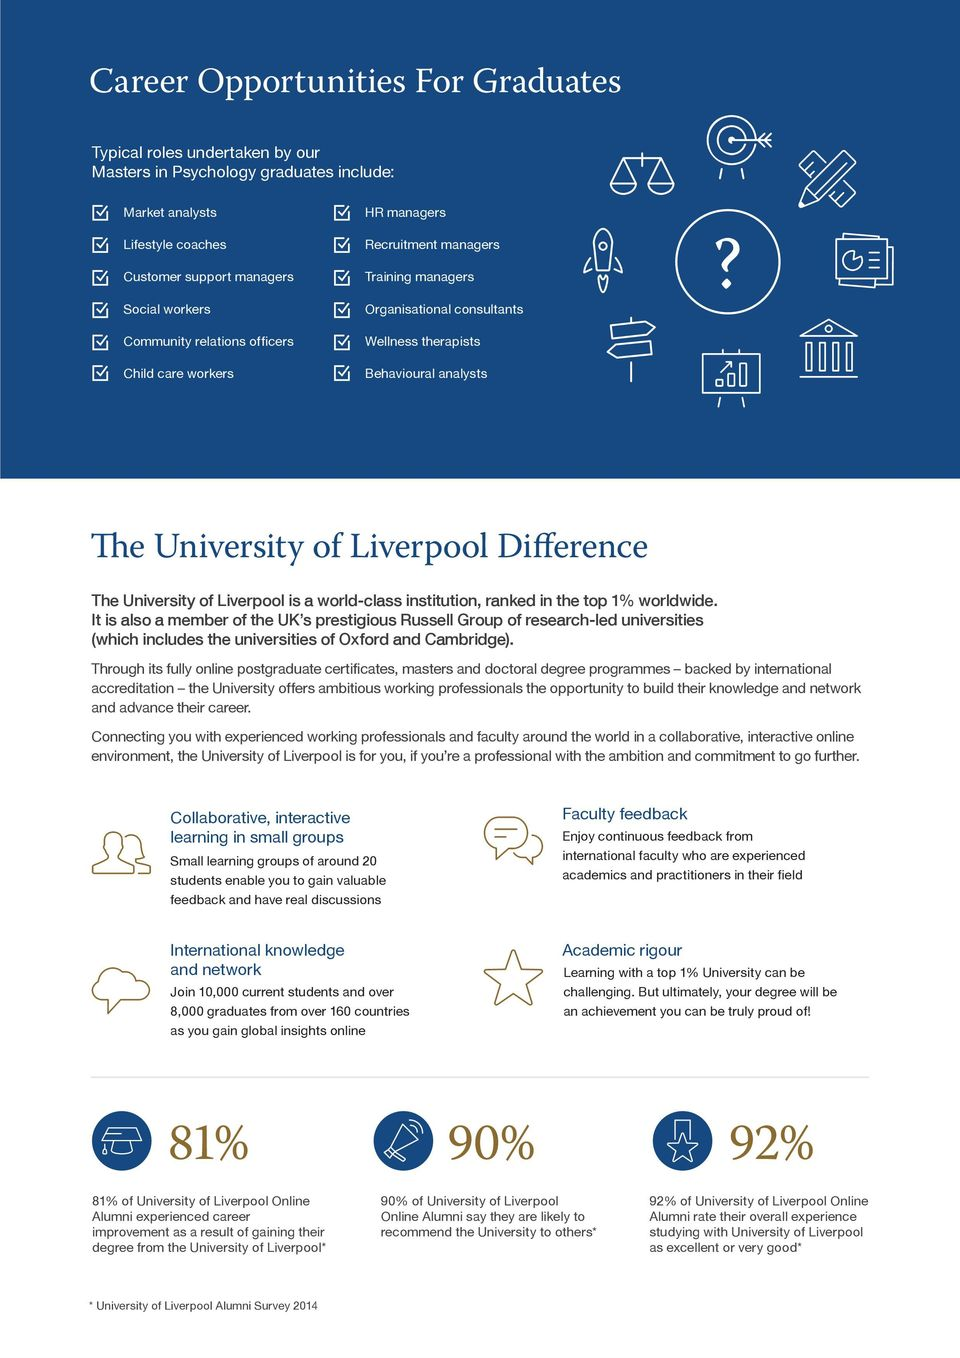 The University of Liverpool Difference The University of Liverpool is a world-class institution, ranked in the top 1% worldwide.